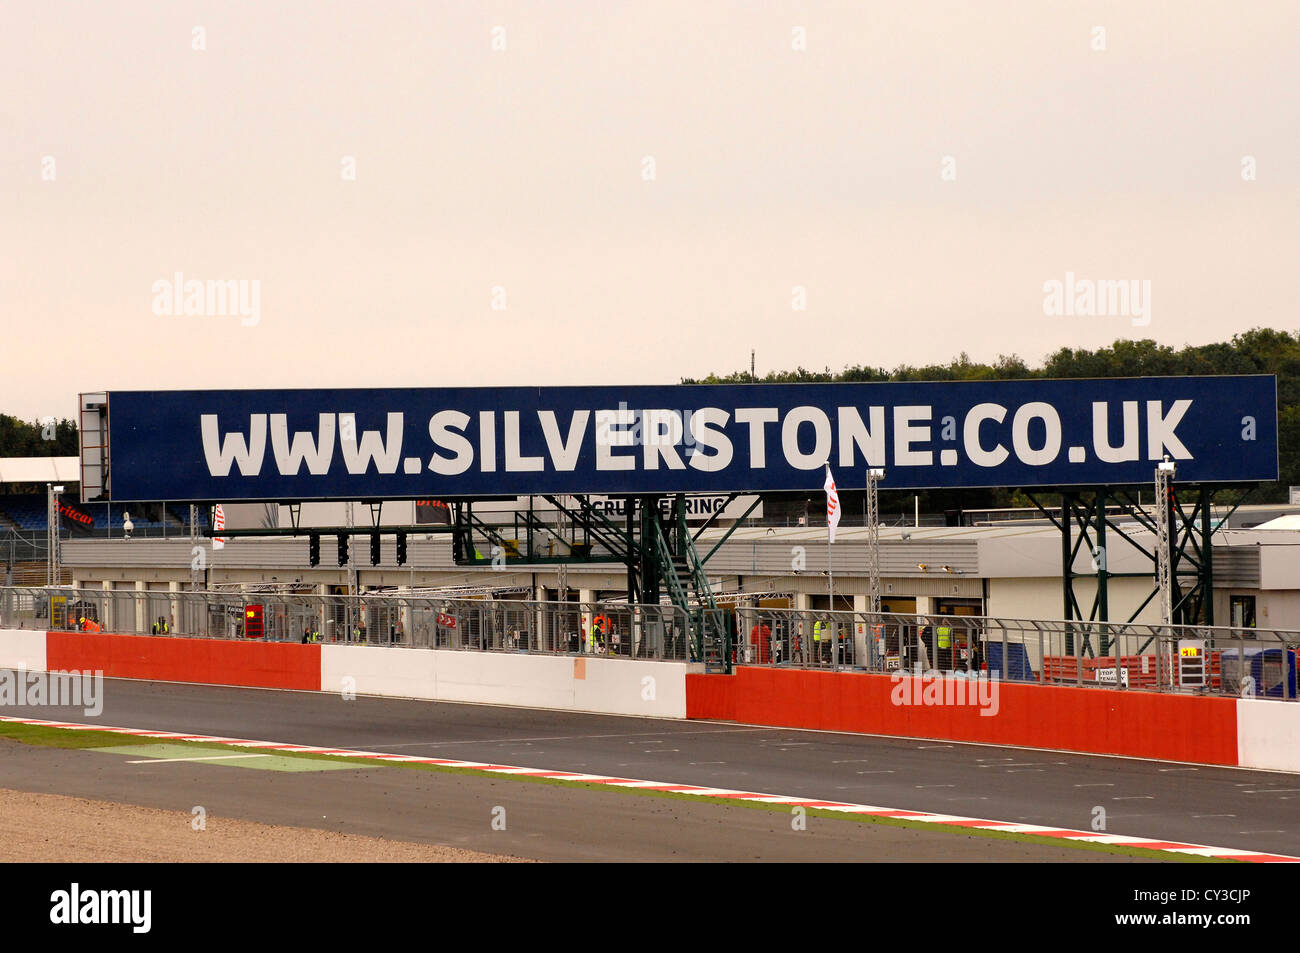 Silverstone race track in Northamptonshire England UK Stock Photo ...